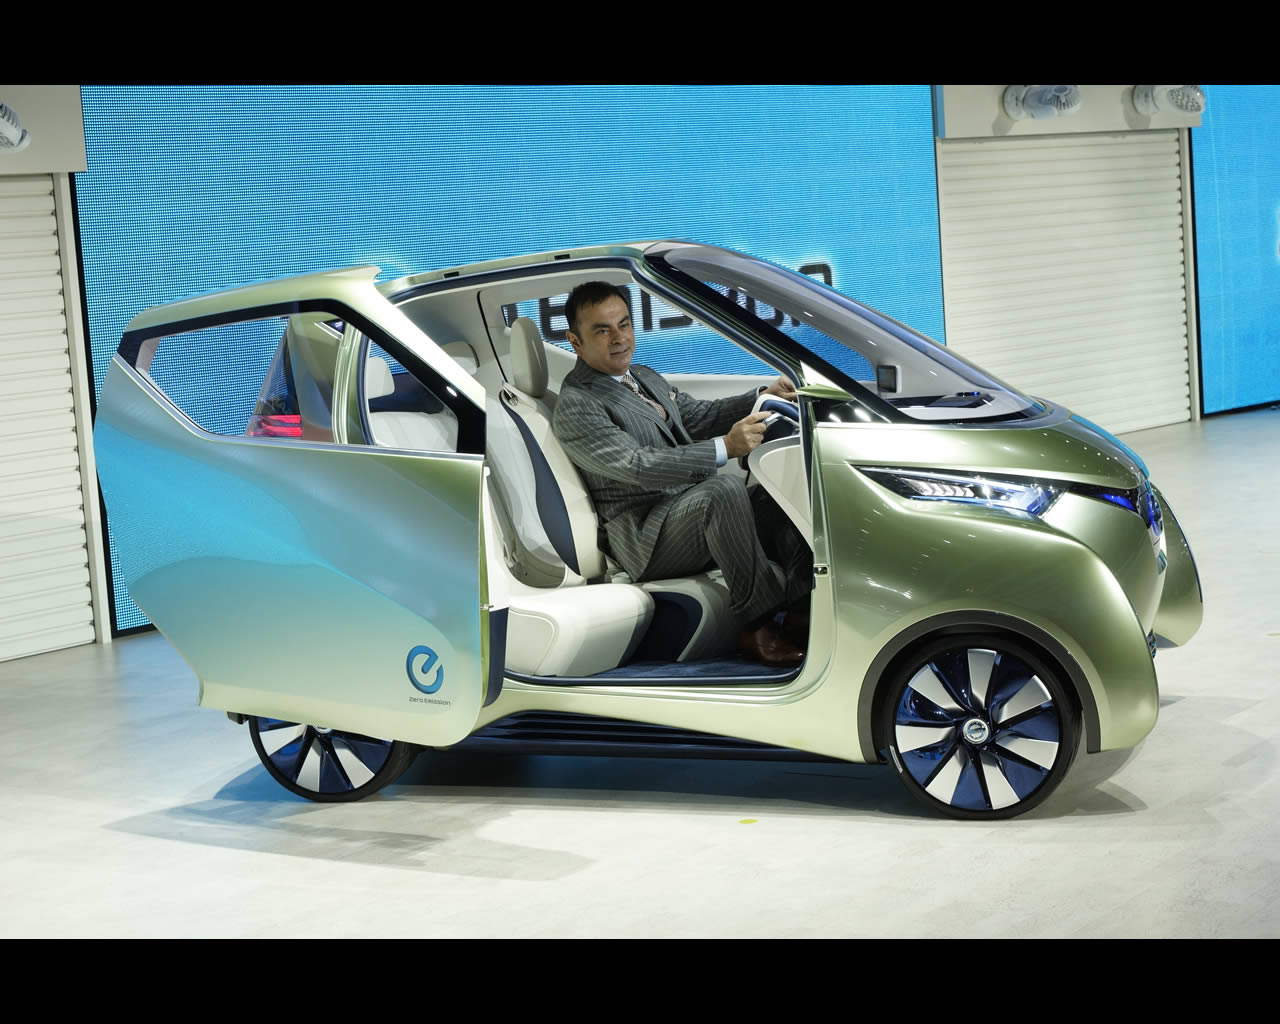 2011 nissan pivo 3 concept image collections hd cars wallpaper nissan pivo 3 electric urbanmuter concept 2011 vanachro Gallery